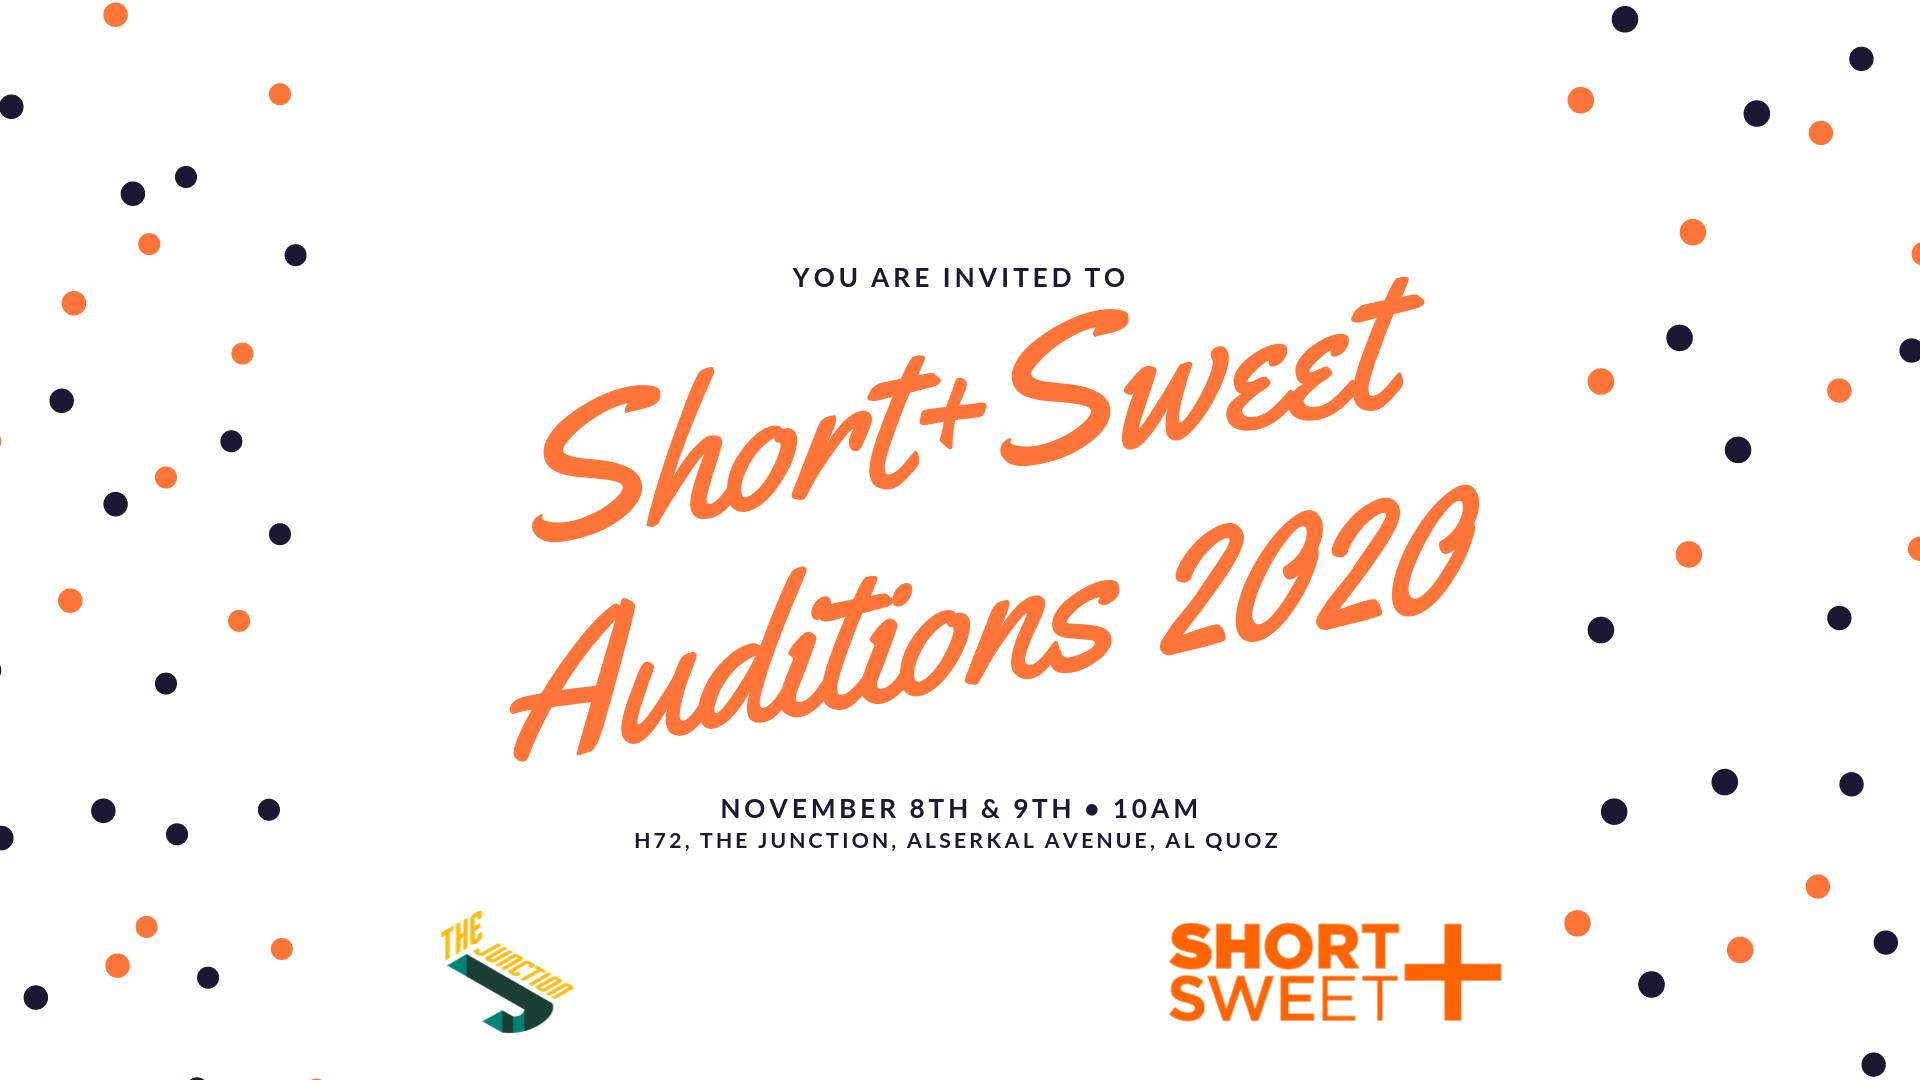 Short+Sweet 2020 – Auditions on Nov 8th – 9th at The Junction Dubai 2019